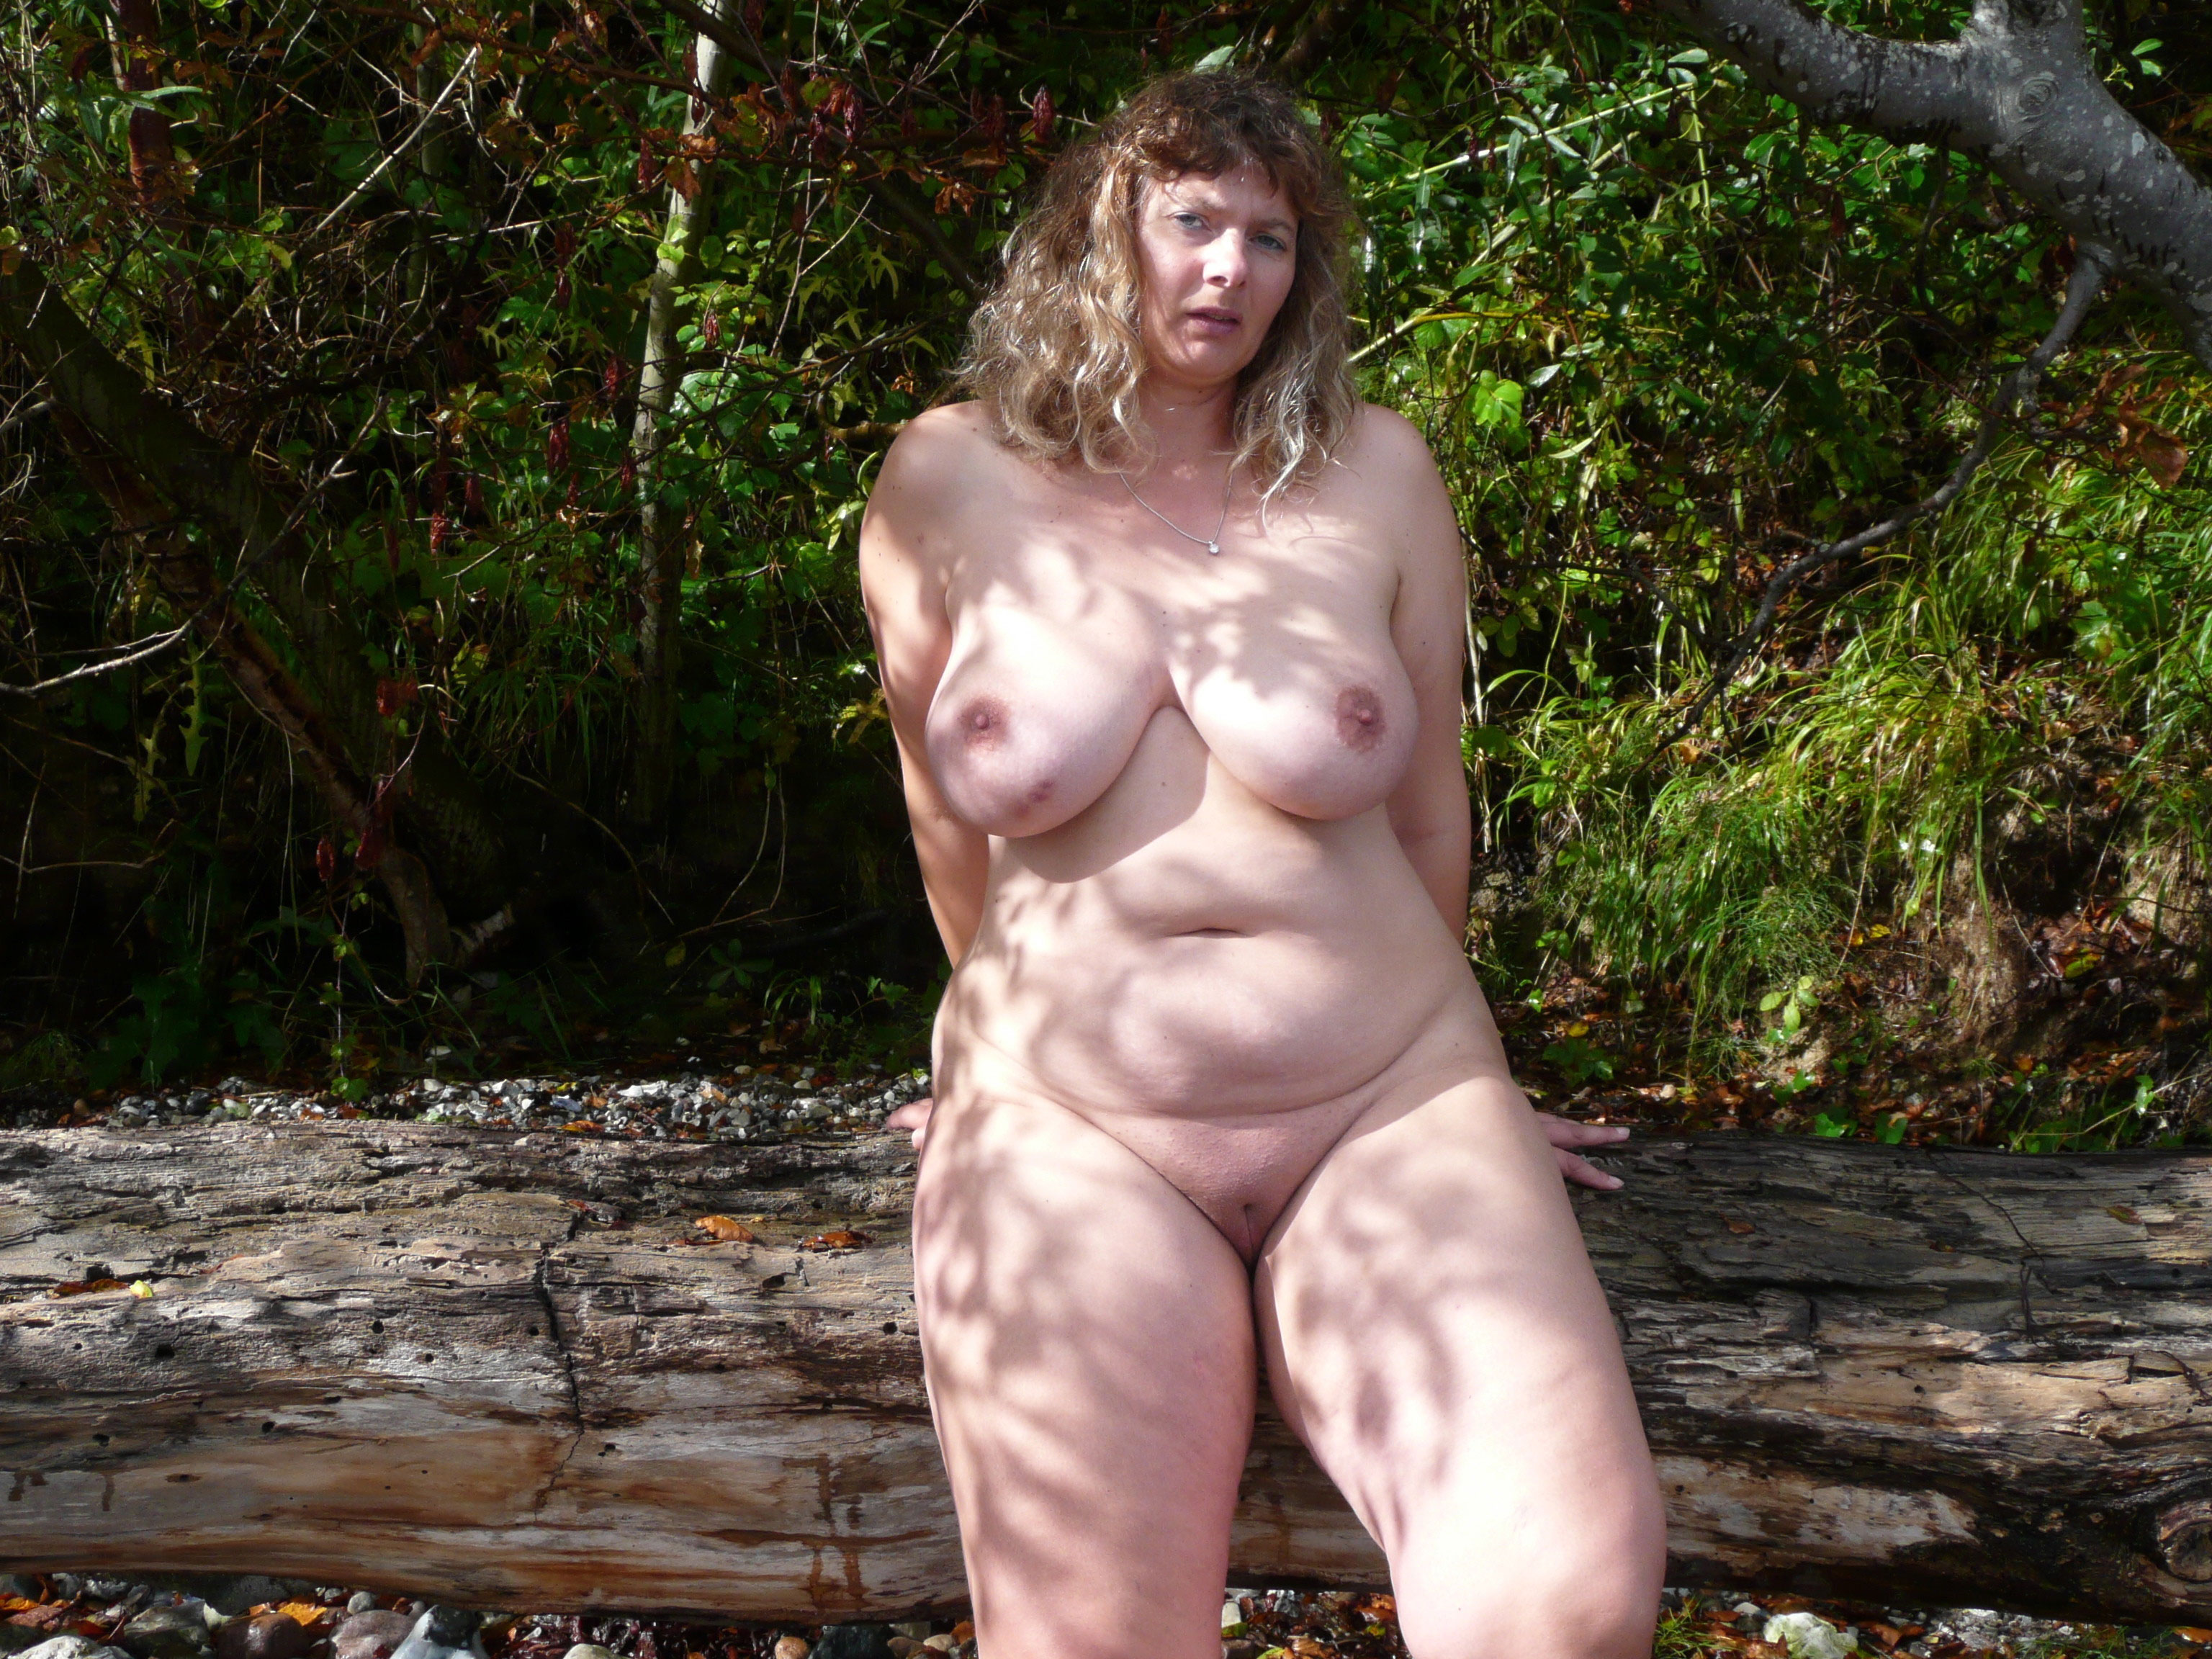 Bbw amateurs posing nude outdoors day, purpose - des photos ...